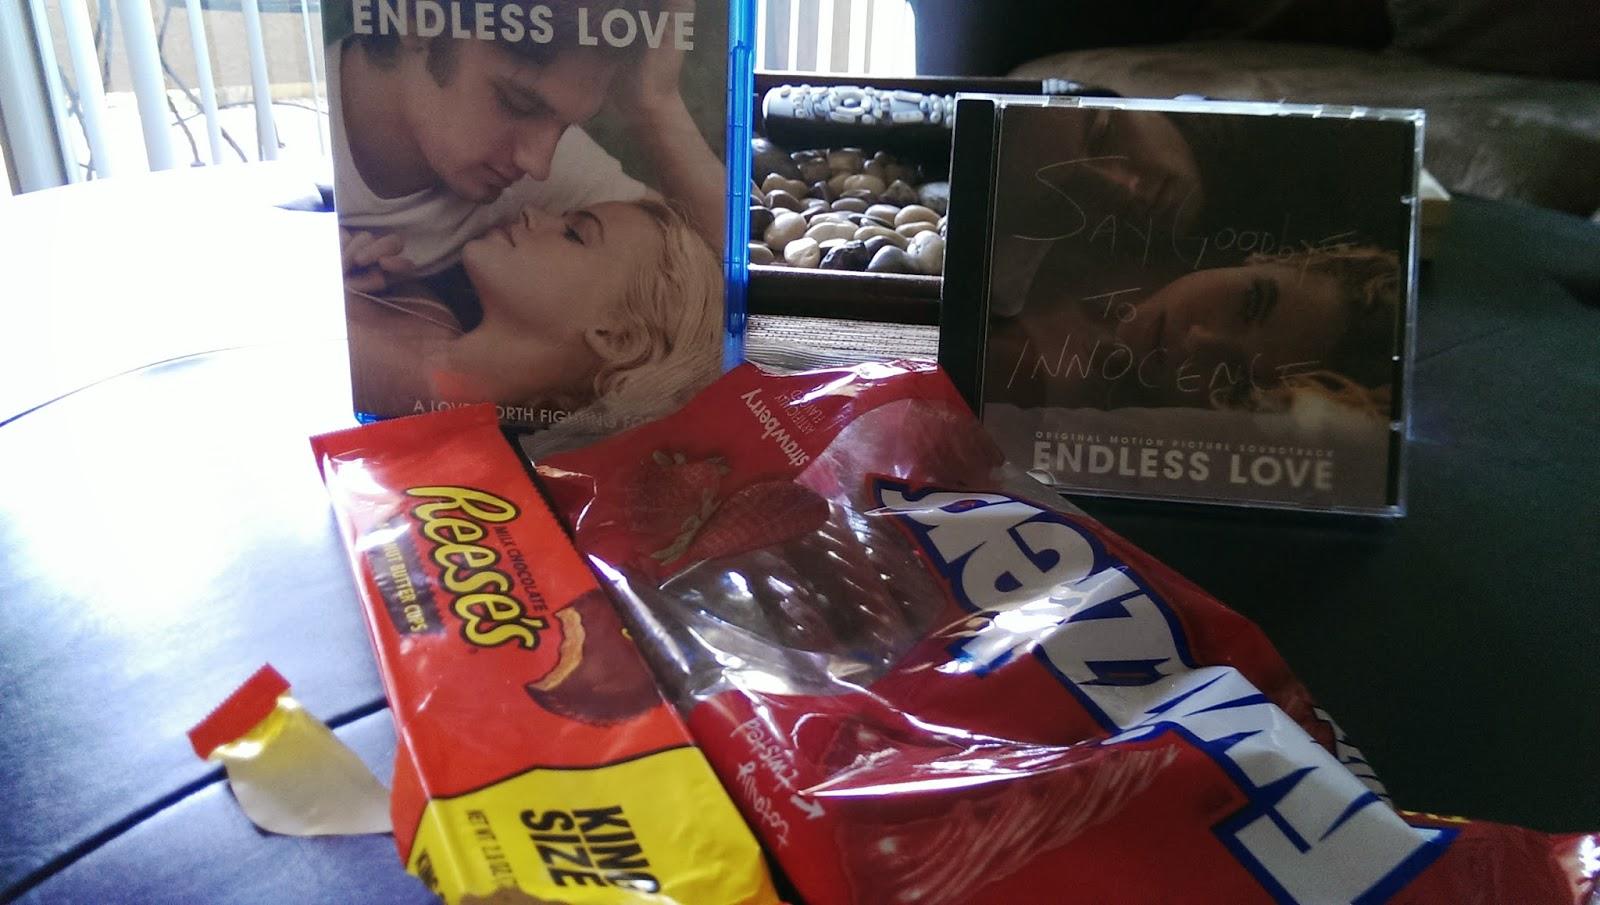 Watching+a+movie Endless Love Movie Night- Endless Love Review 2014